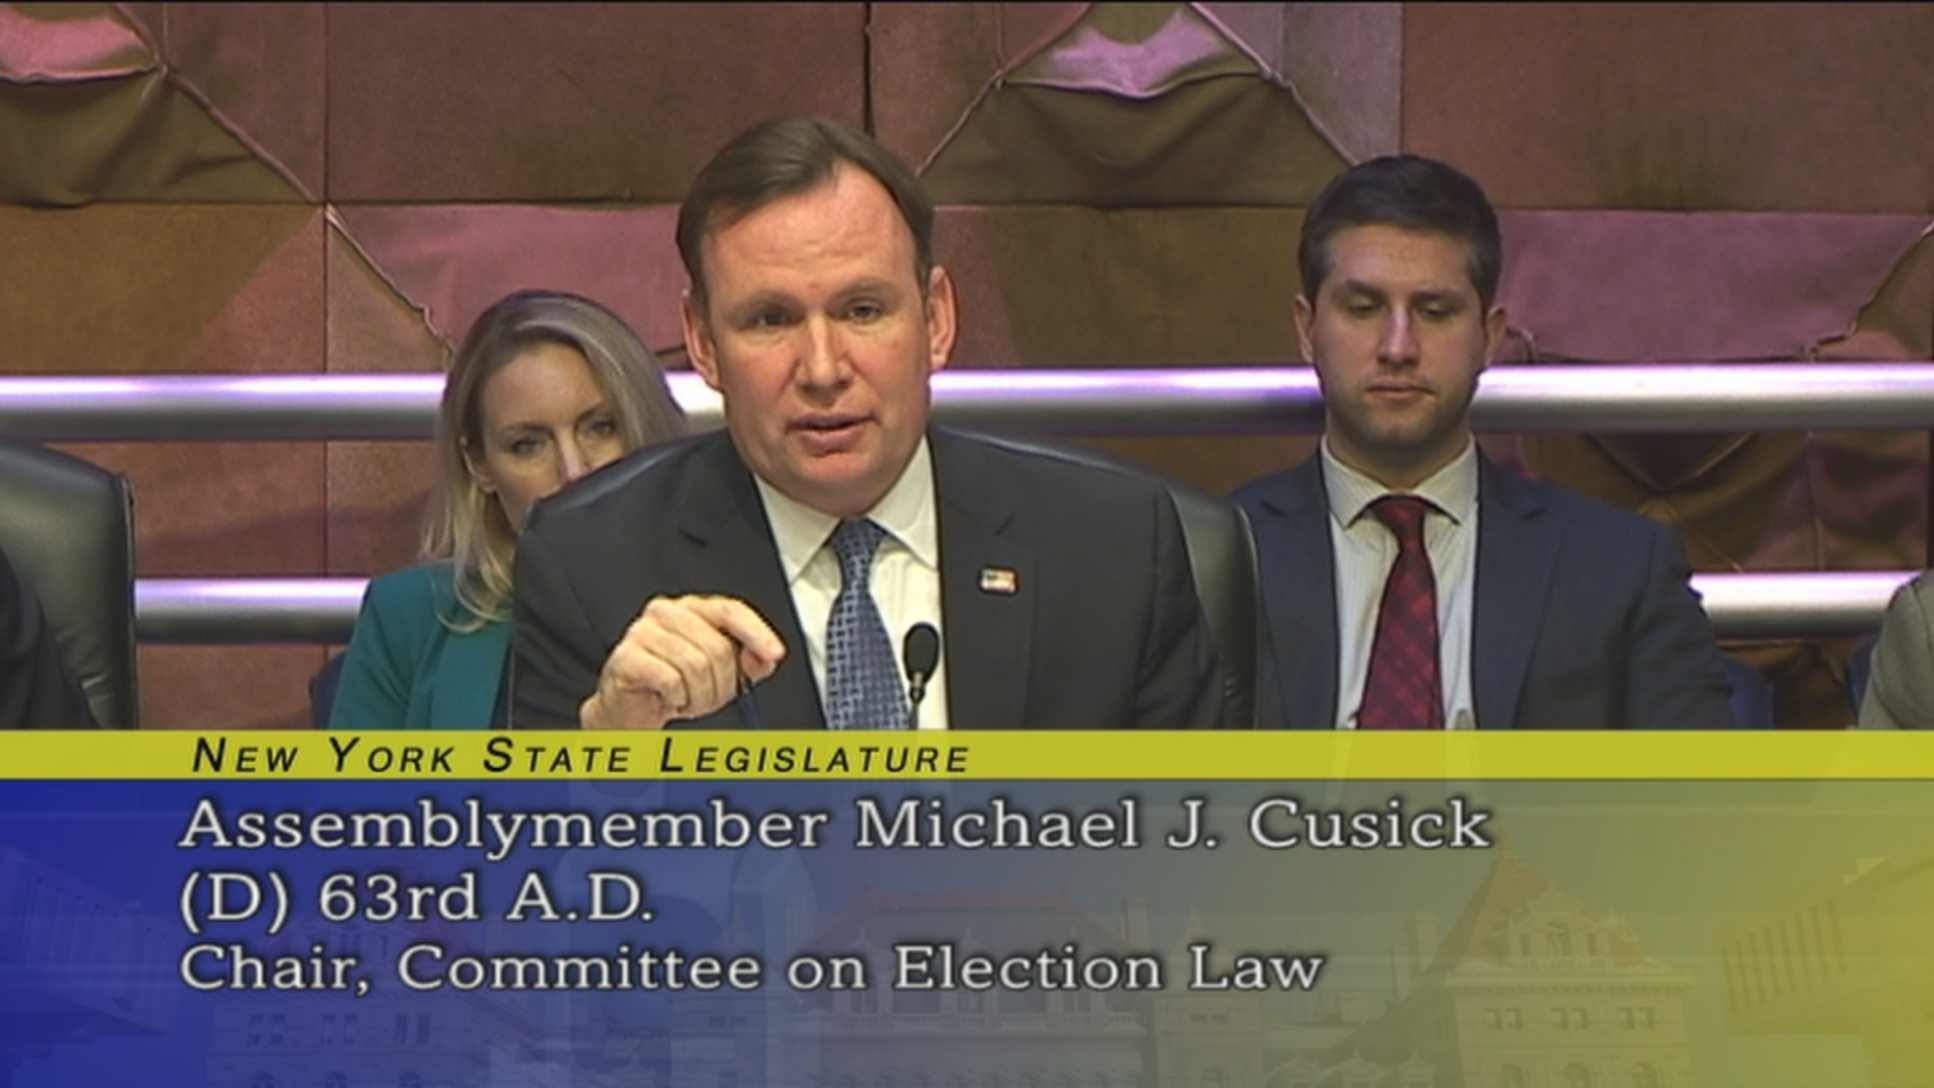 Assemblyman Cusick Raises Concern For The Protocol Used To Report Bad Voter Registration